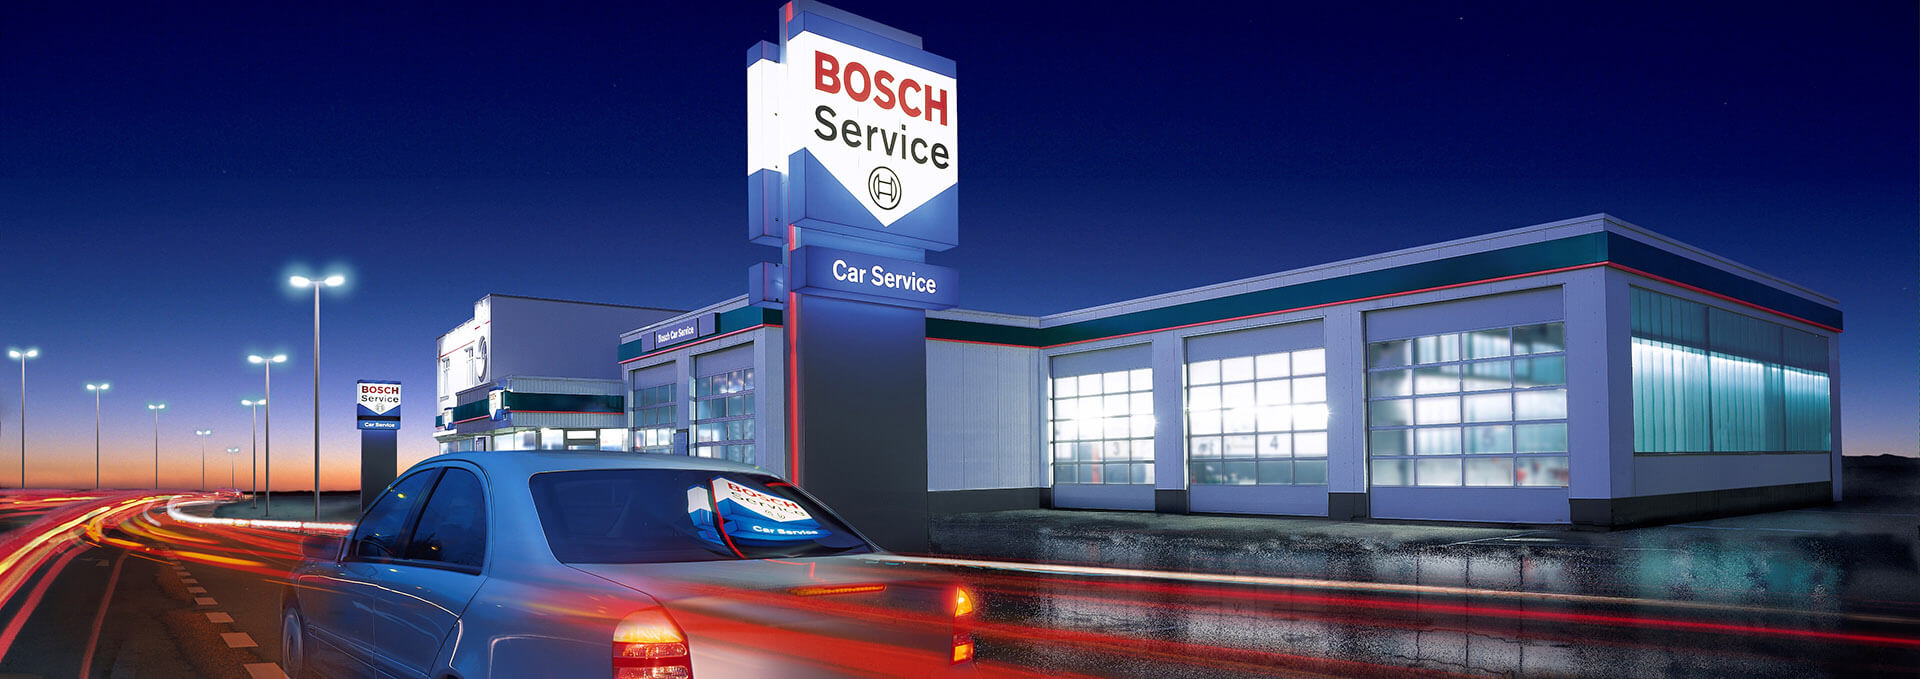 Bosch Car Service Station 4